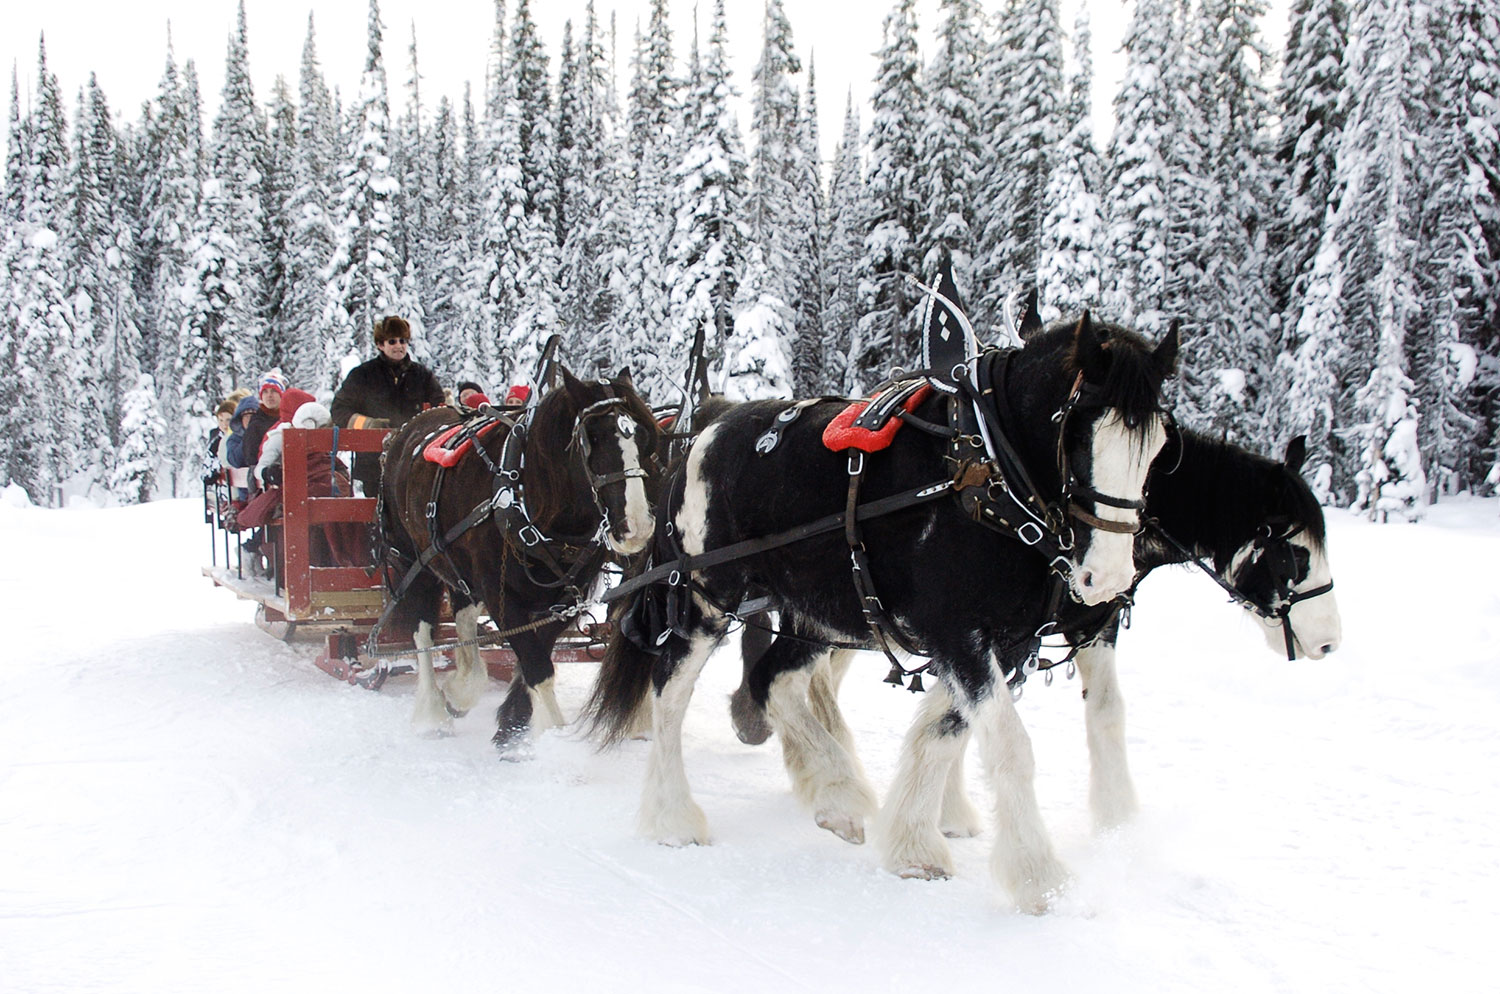 https://i0.wp.com/wp.stu.ca/wellness/wp-content/uploads/sites/17/2014/11/Horse-Sleigh-Rides.jpg